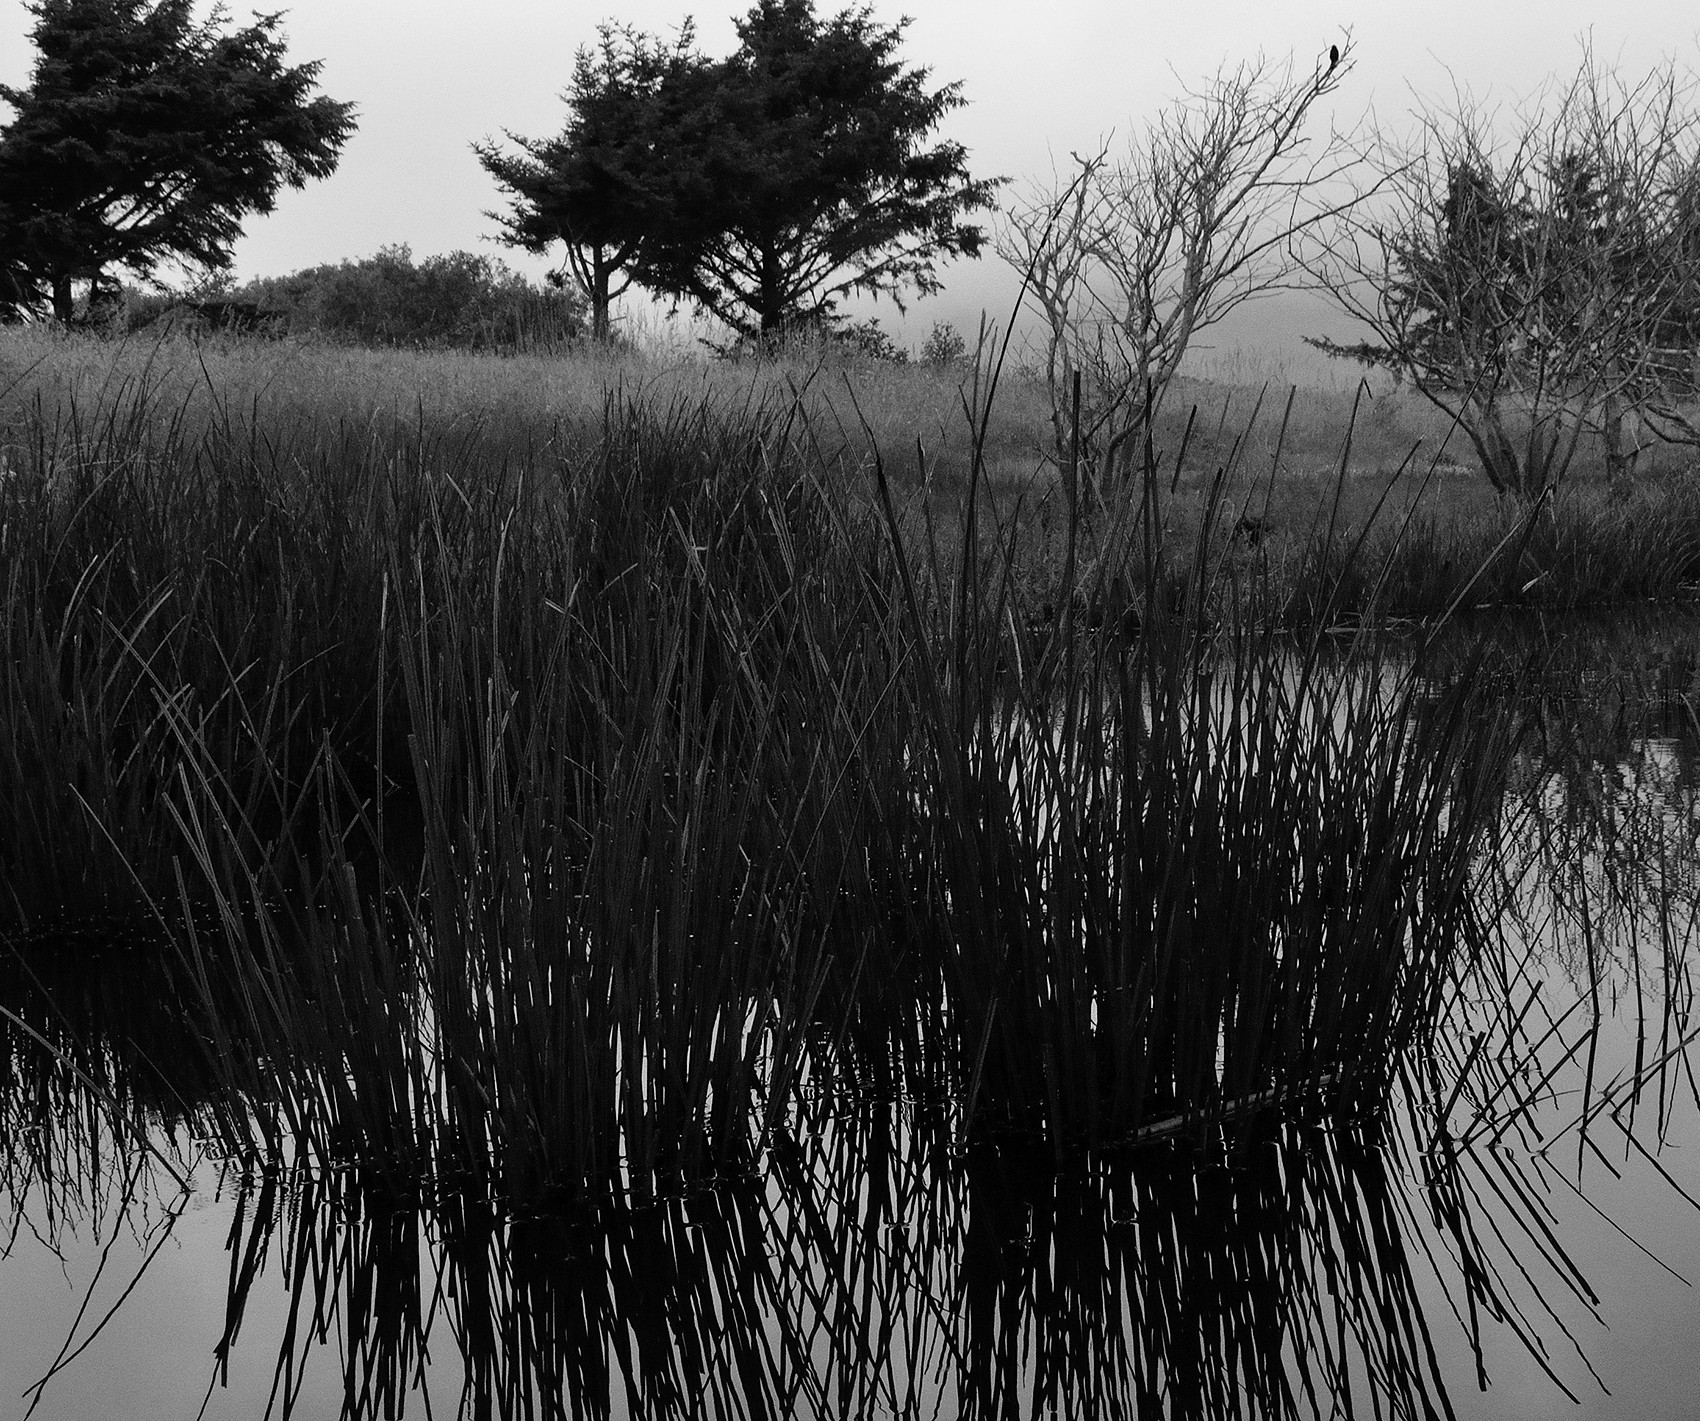 lagoon grass and trees 300 res 1700.jpg